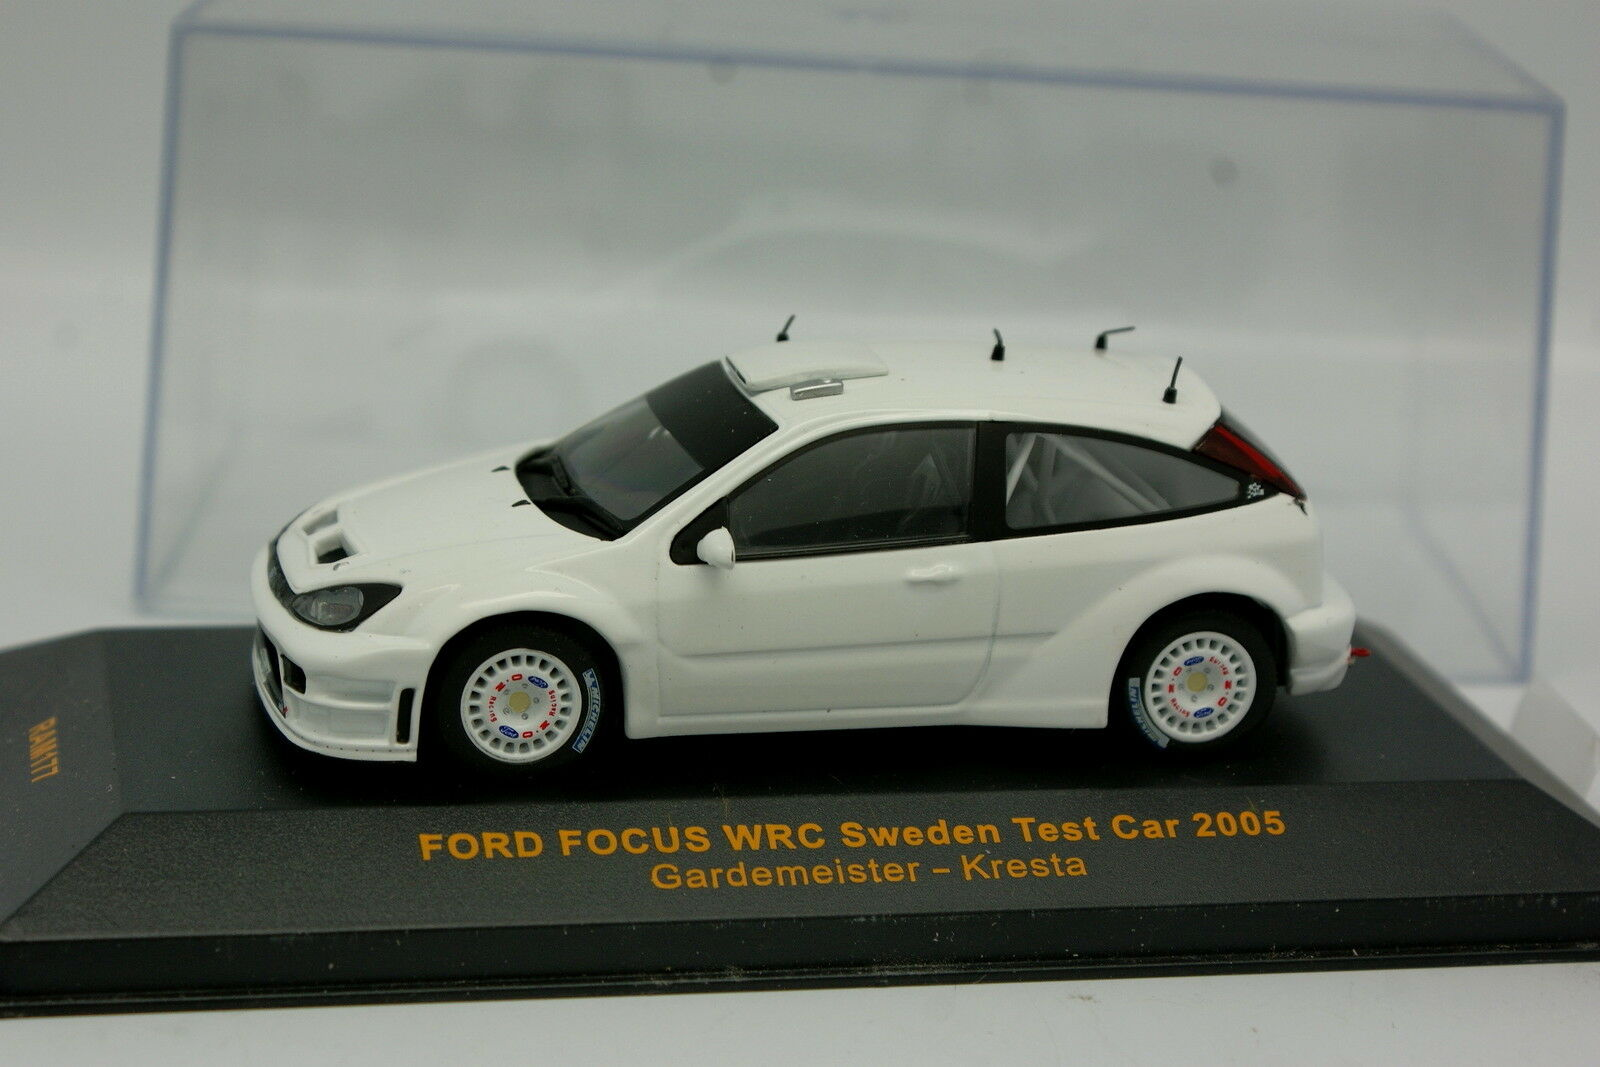 Ixo 1 43 - Ford Focus WRC Test Car Sweden 2005 Gardemeister